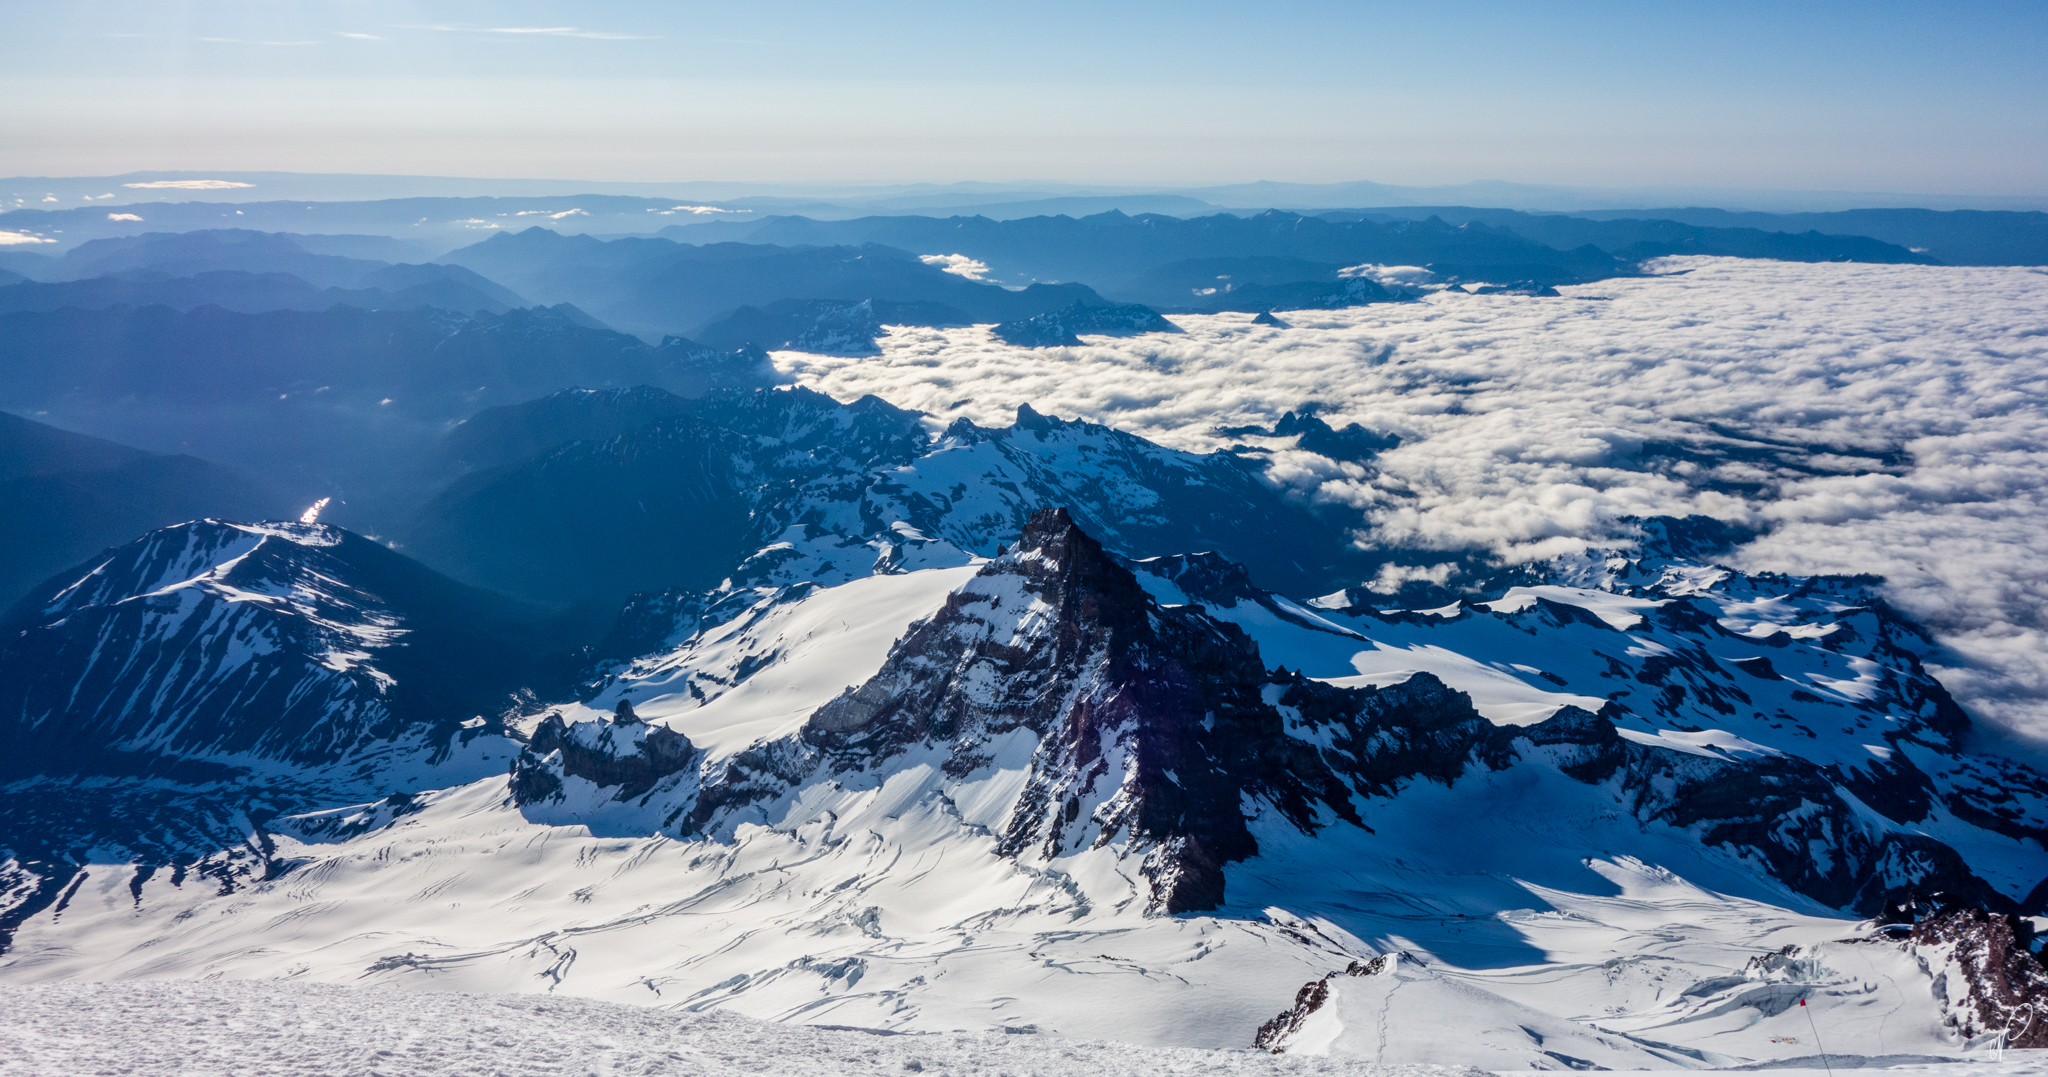 The view from high break. Rainier is also known as Big Tahoma. The peak in the middle of this photo is Little Tahoma